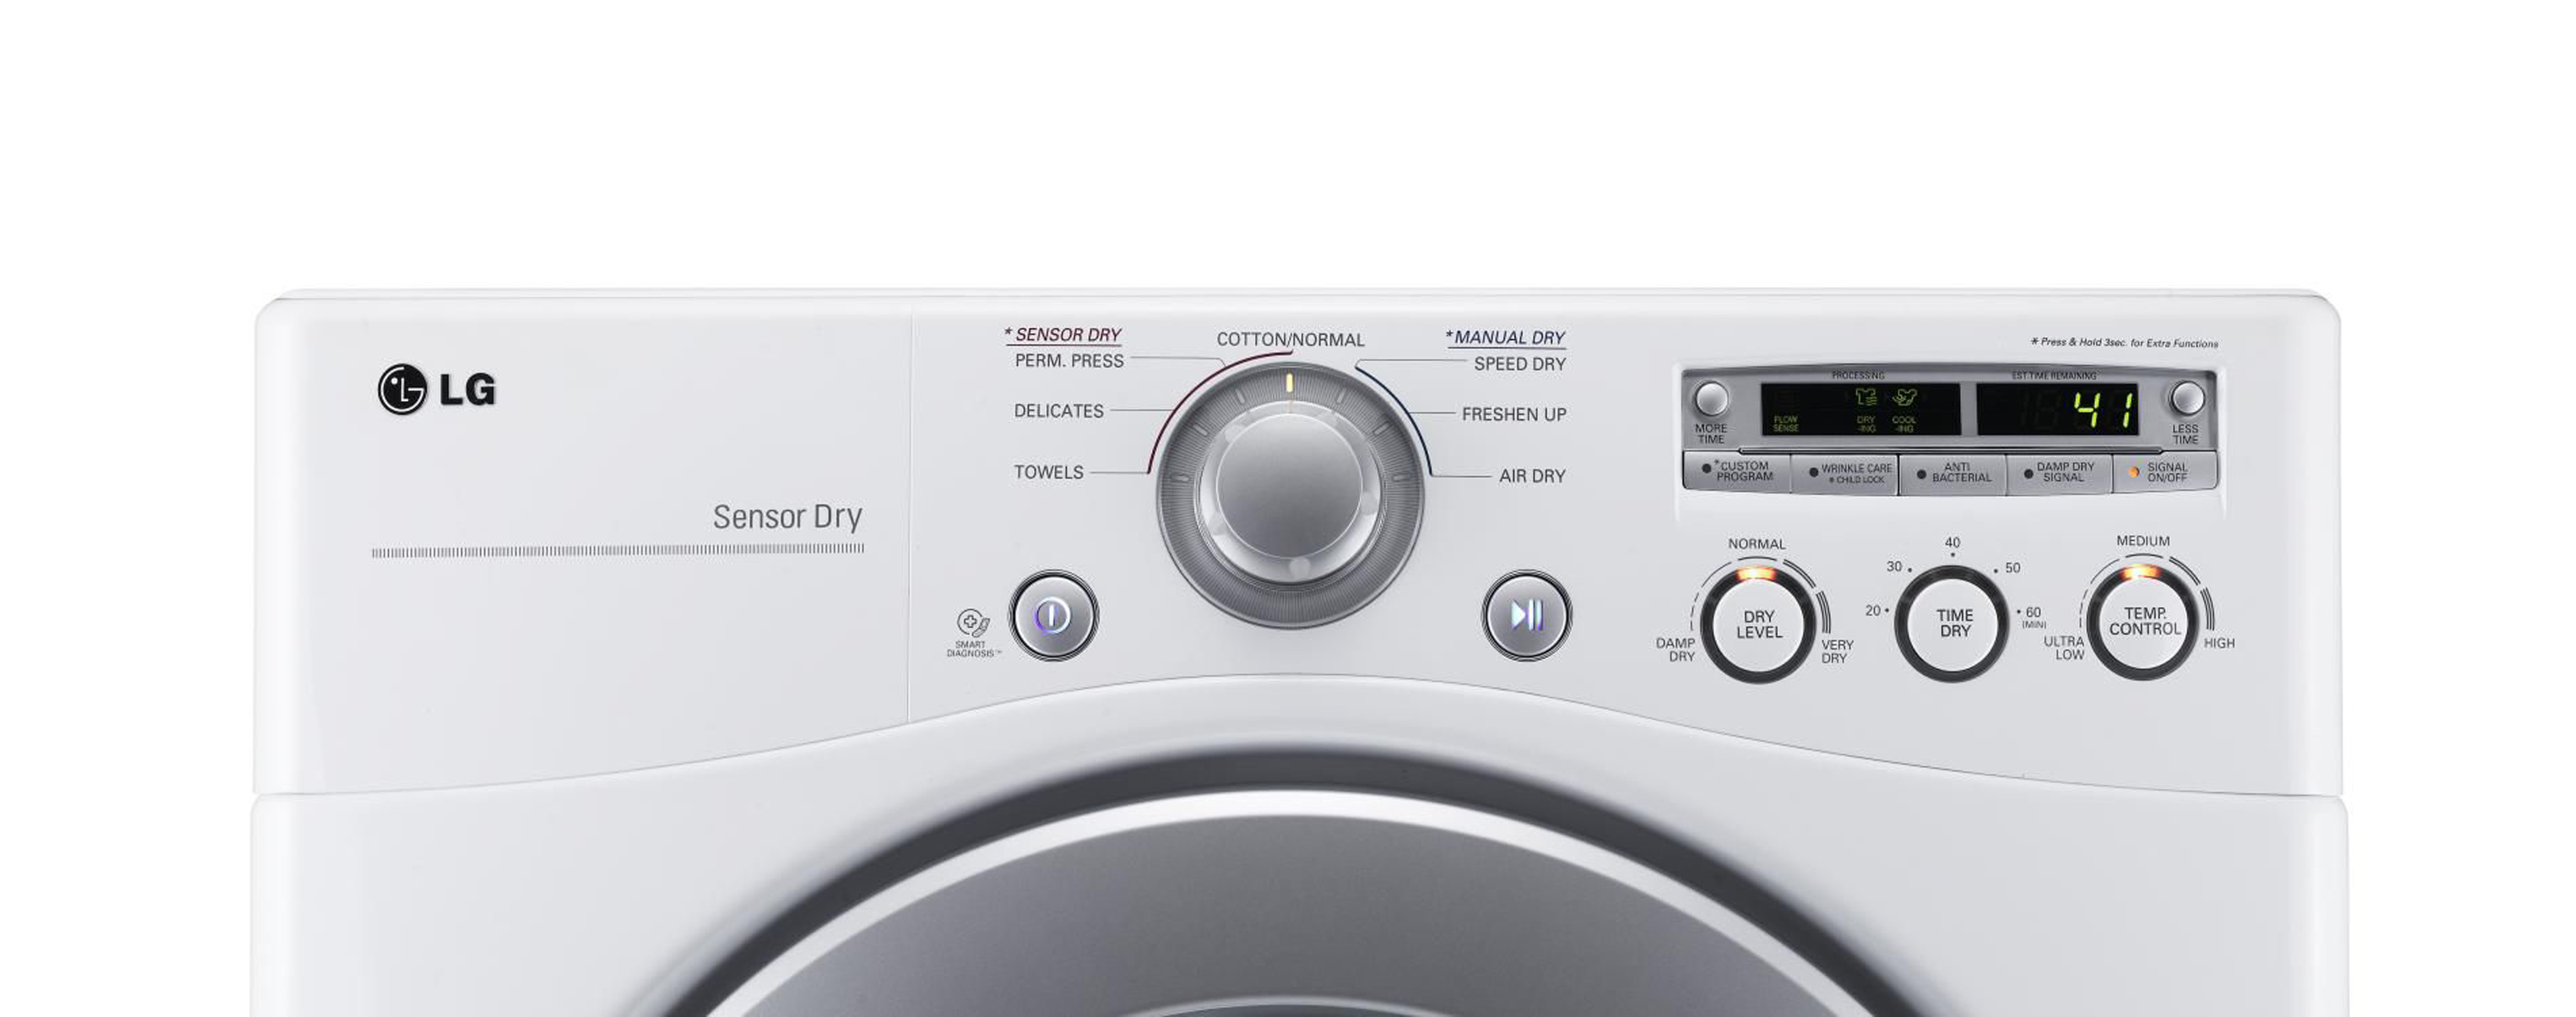 LG 7.1 cu. ft. Extra Large Capacity  Electric Dryer with Sensor Dry - White